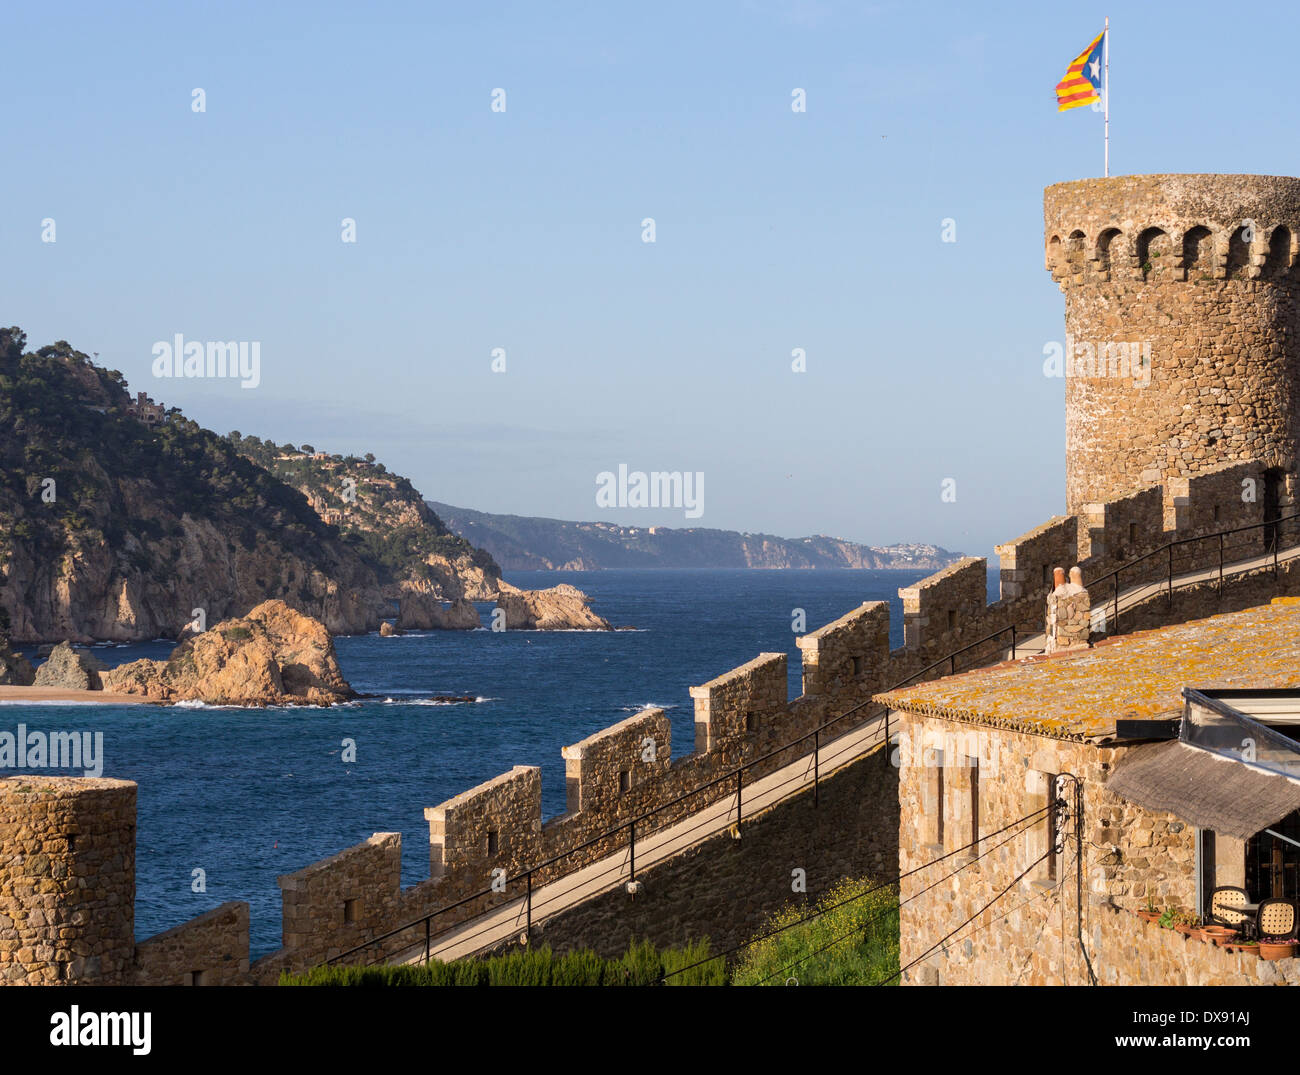 Tossa de Mar Castle overlooking the sea. A fortified hill topped by a Catalonian flag looks over the blue Mediterranean Sea. - Stock Image